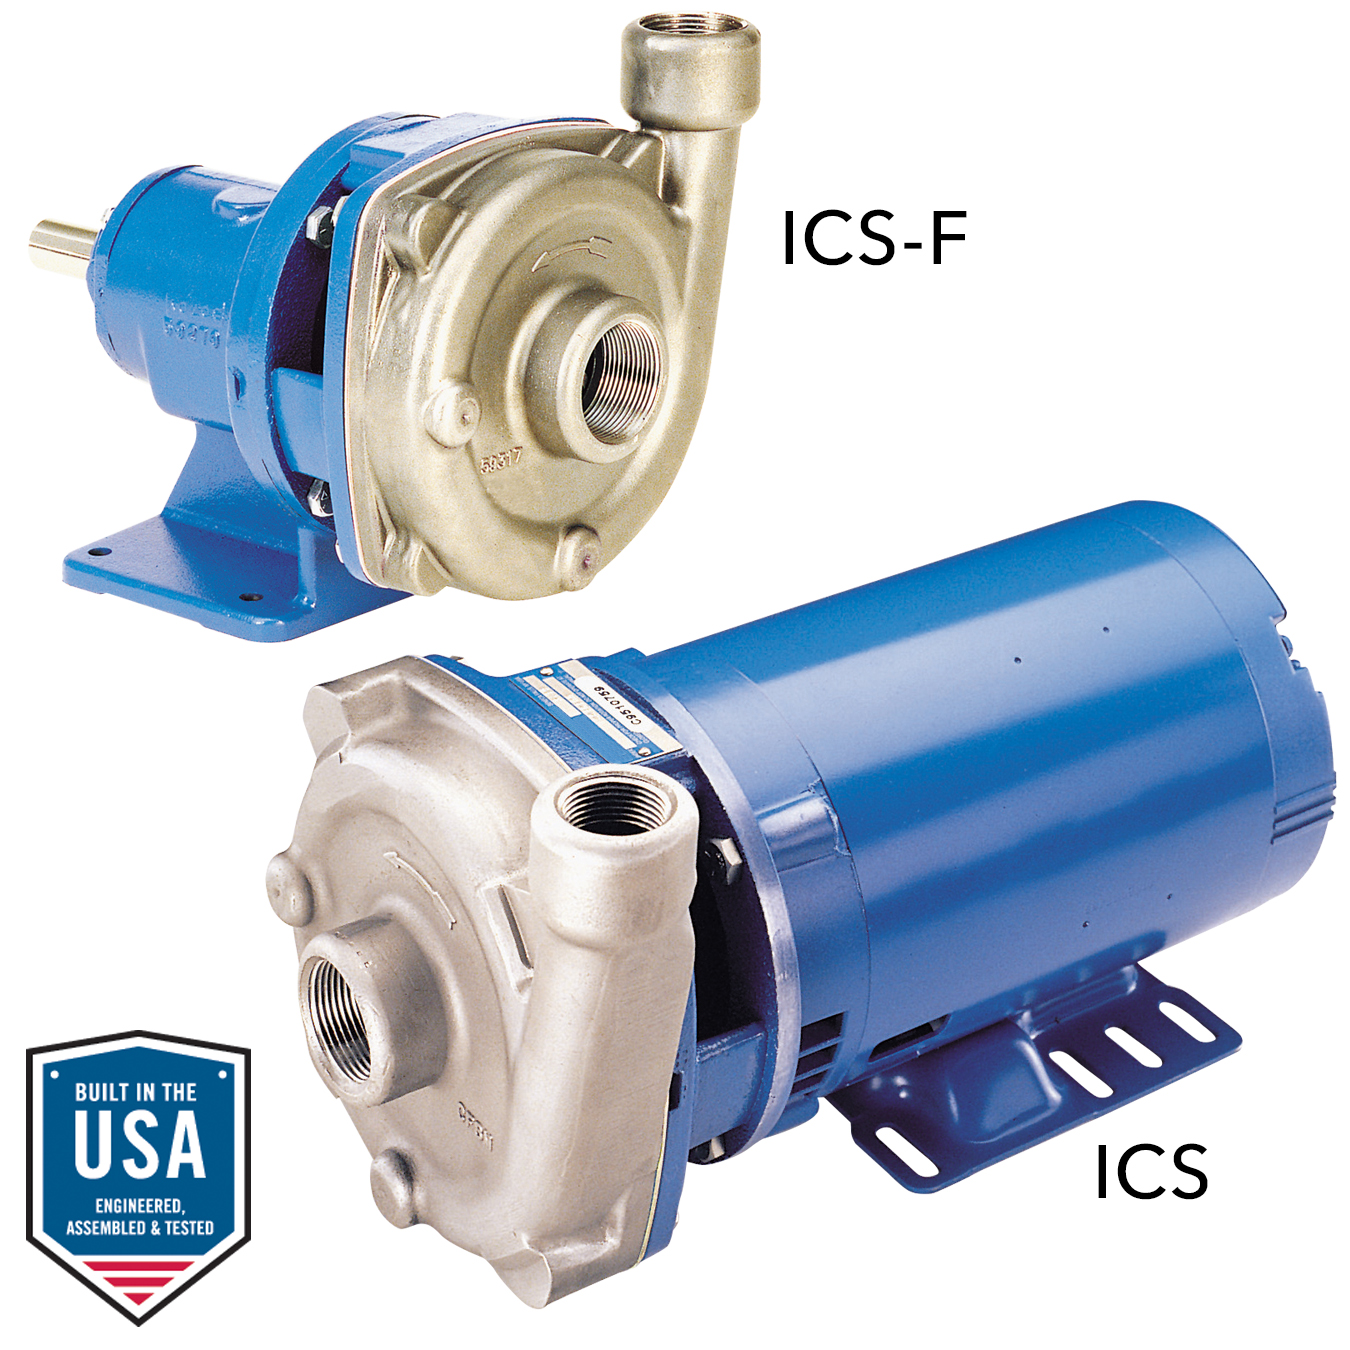 Ics icsf stainless steel pumps xylem applied water